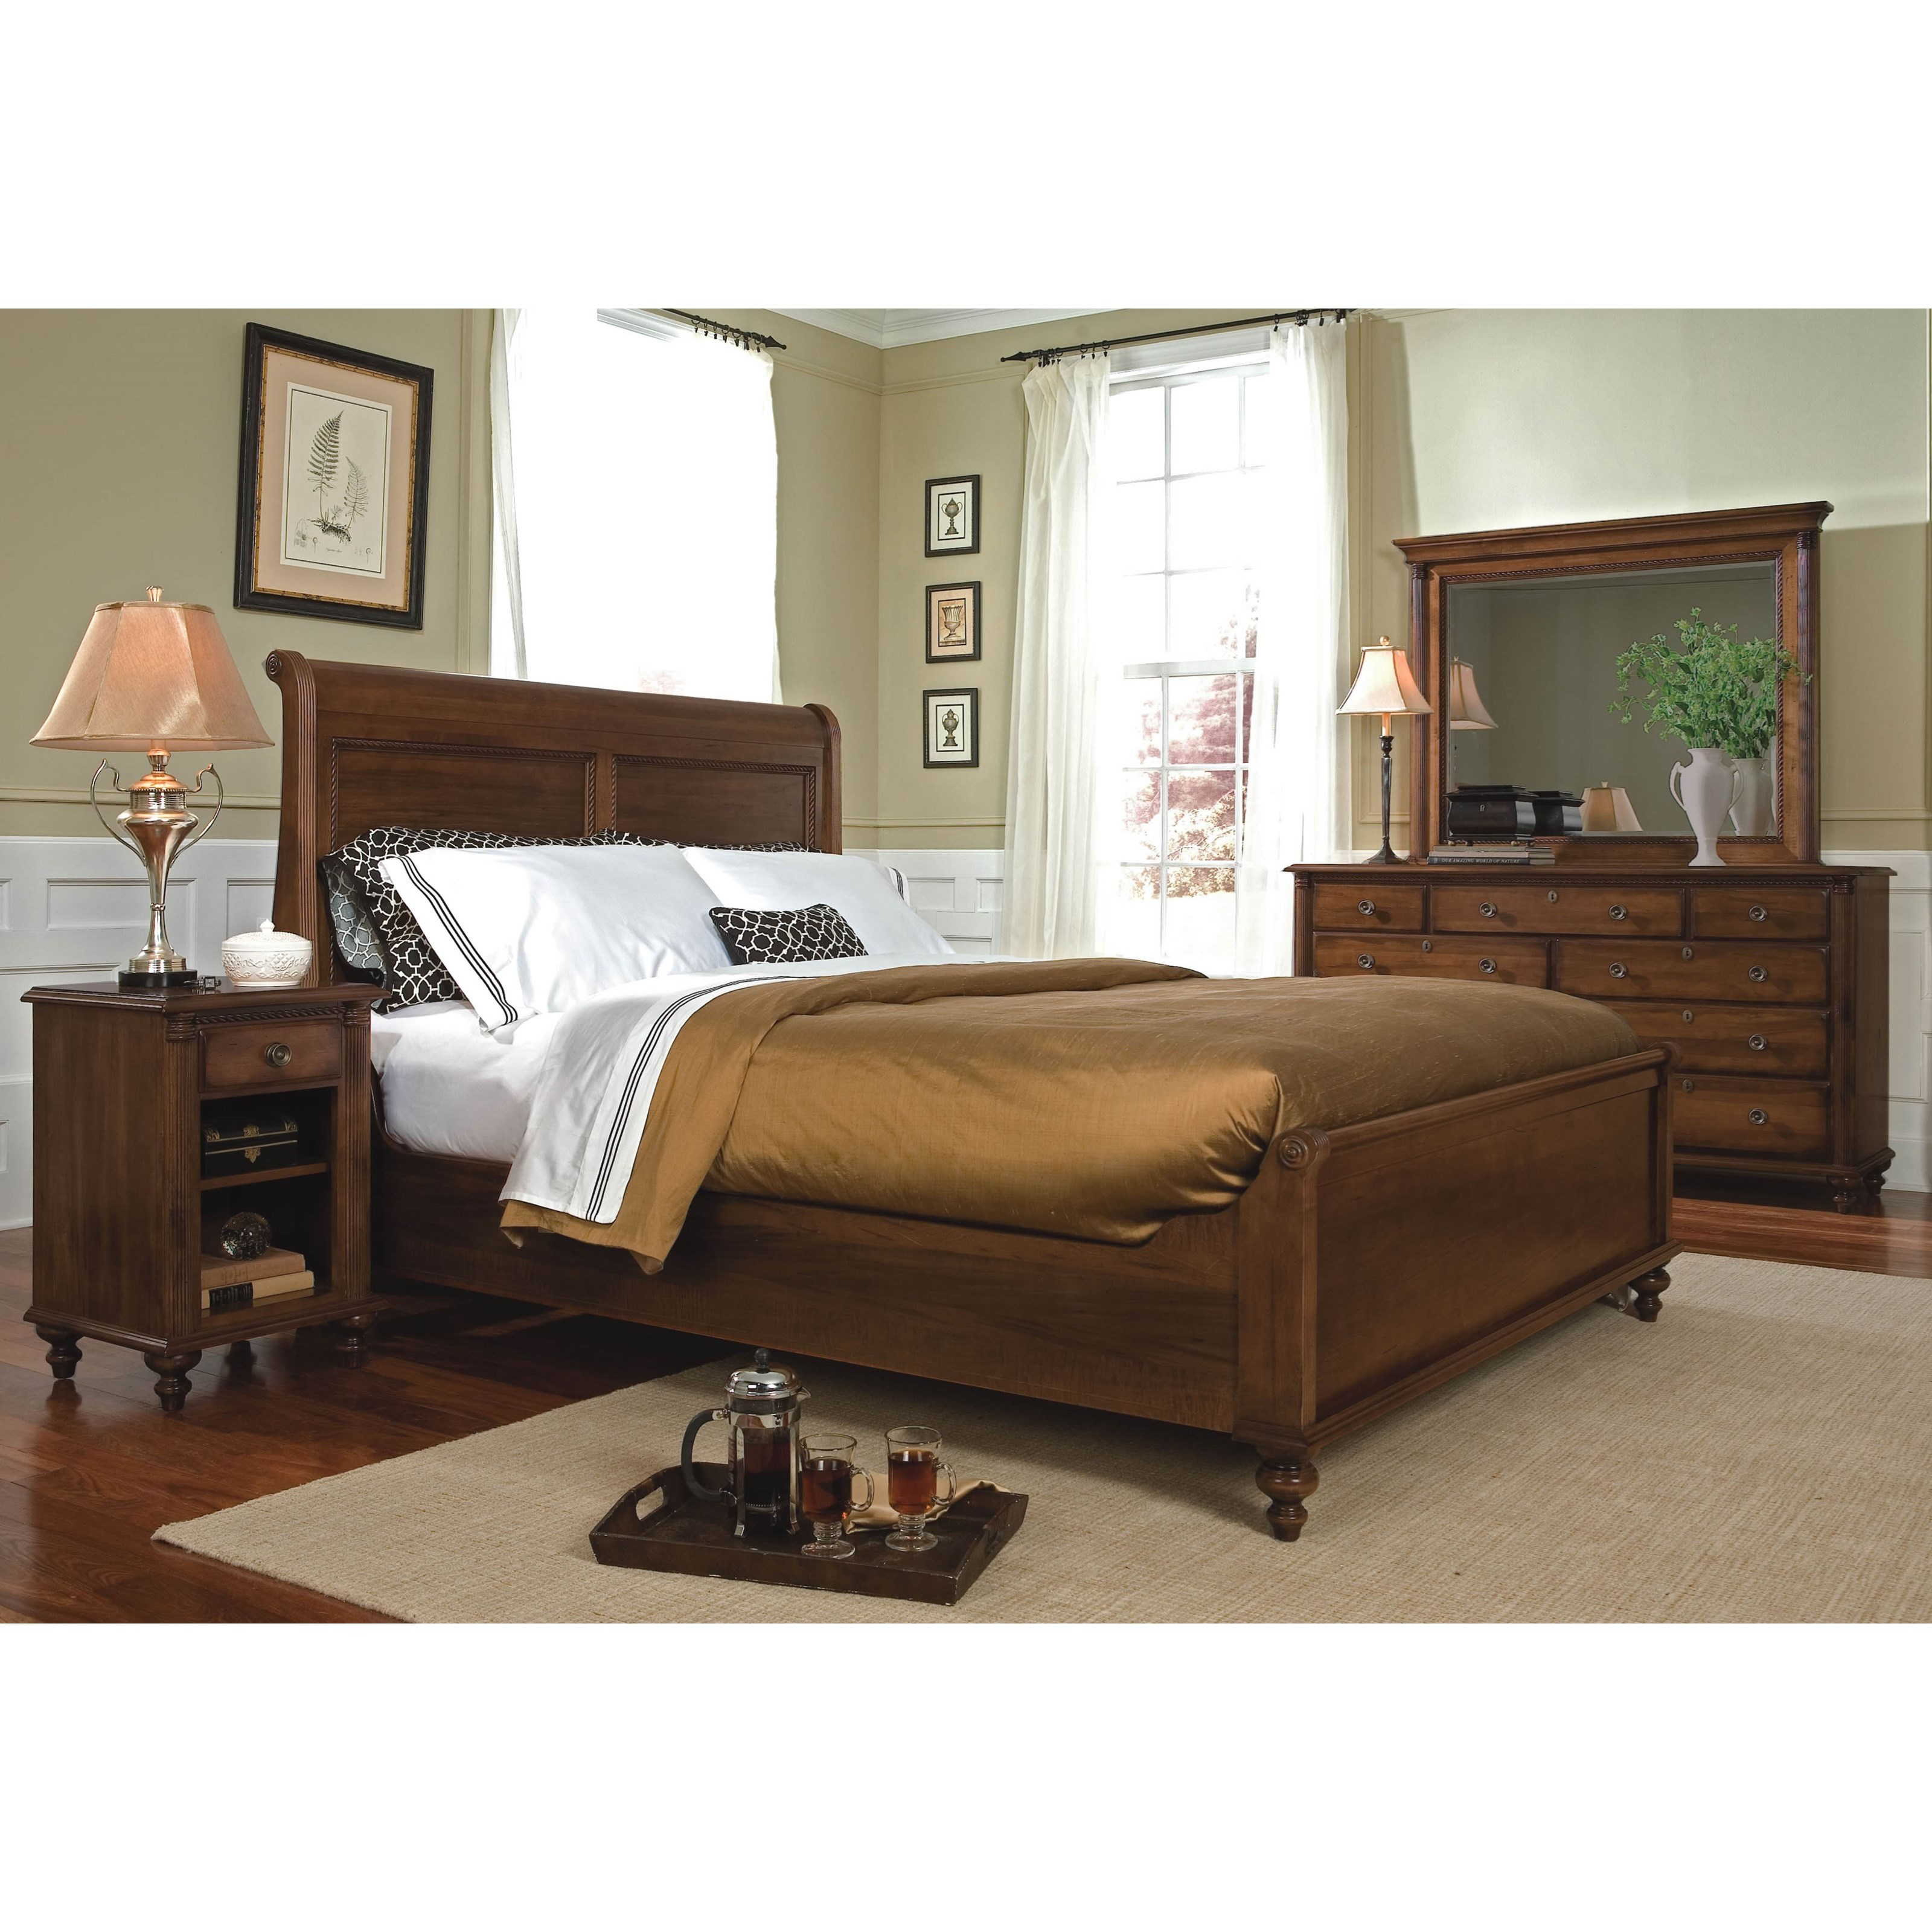 Durham Saville Row Traditional Queen Sleigh Bed With Low